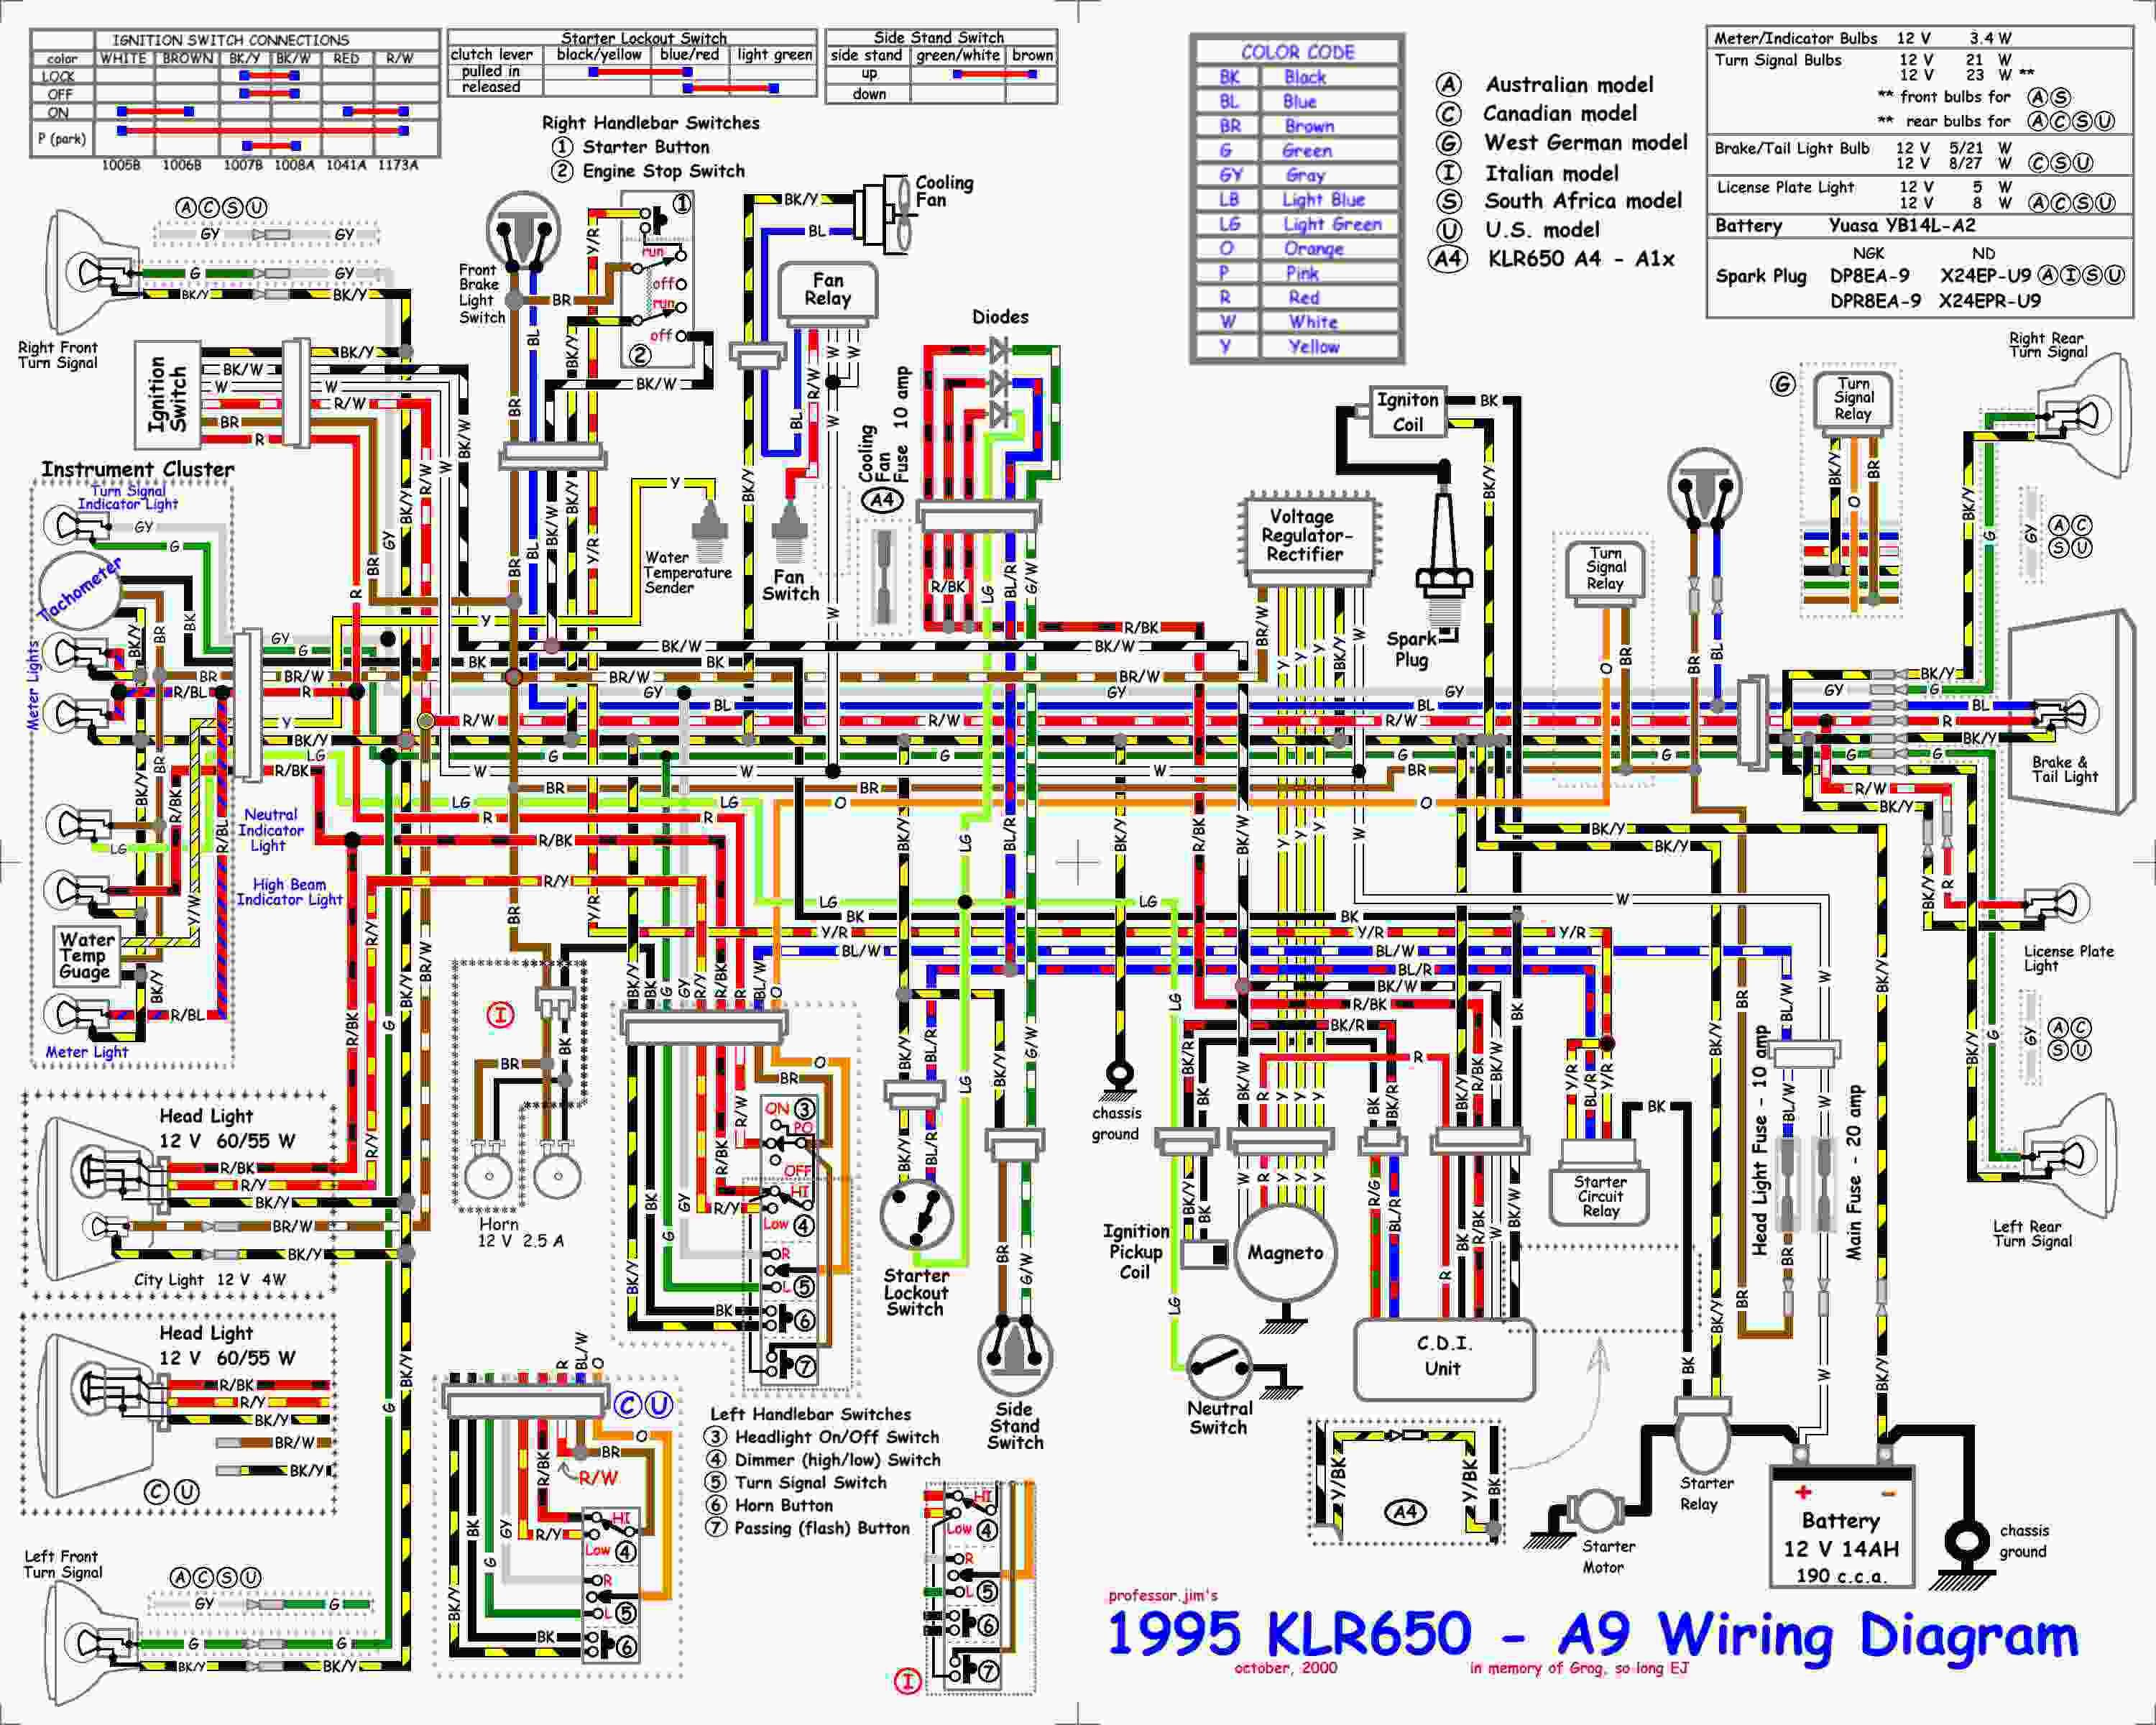 M1009 Cucv Wiring Diagram - Wiring Diagram Show on wire schematics, ignition schematics, electronics schematics, ford diagrams schematics, engineering schematics, plumbing schematics, amplifier schematics, transformer schematics, motor schematics, engine schematics, transmission schematics, piping schematics, computer schematics, electrical schematics, circuit schematics, design schematics, ductwork schematics, tube amp schematics, ecu schematics, generator schematics,